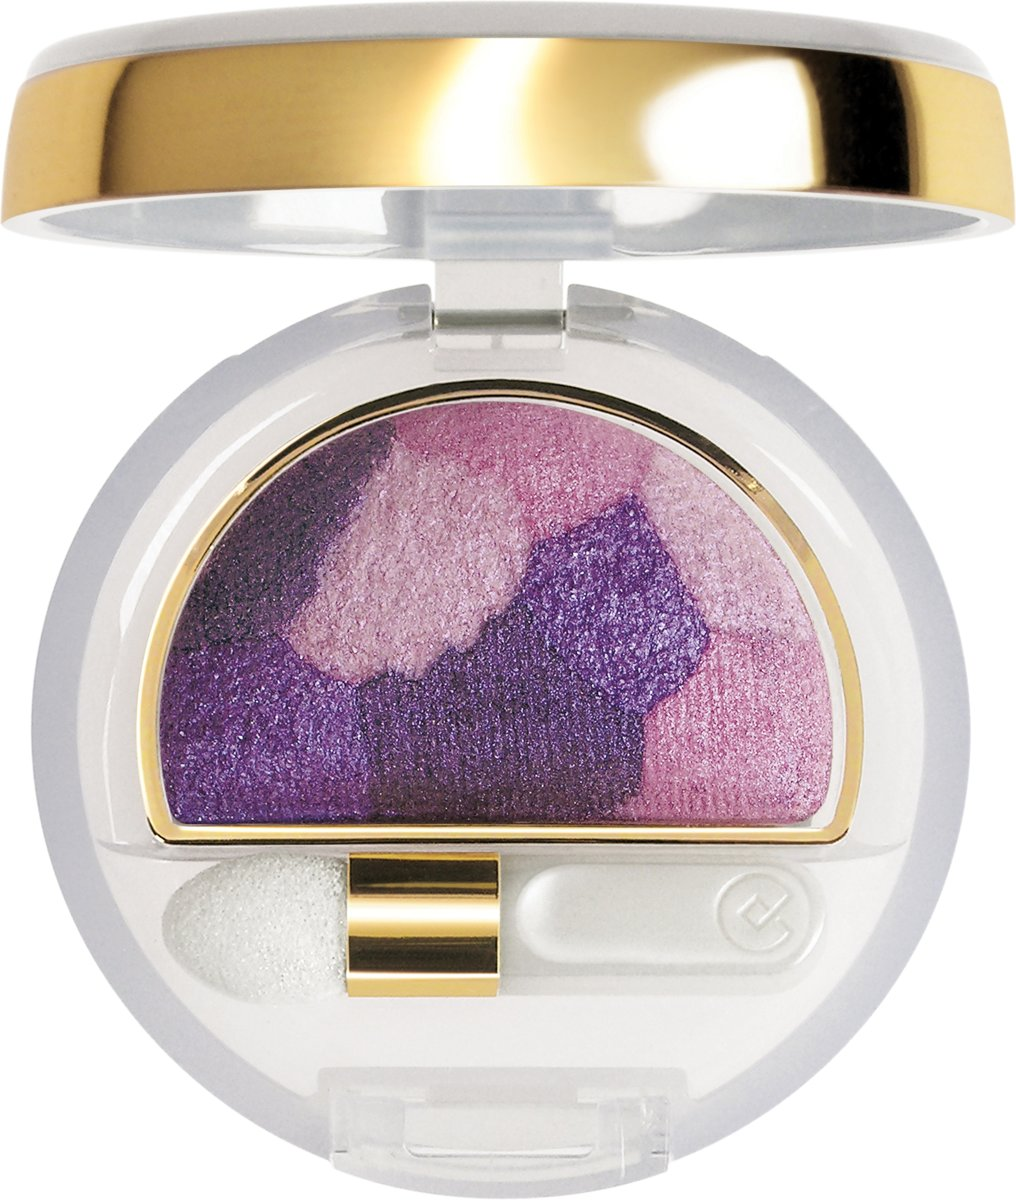 Collistar Double Effect Wet & Dry Eyeshadow - 16 Patchwork Violet - Oogschaduw